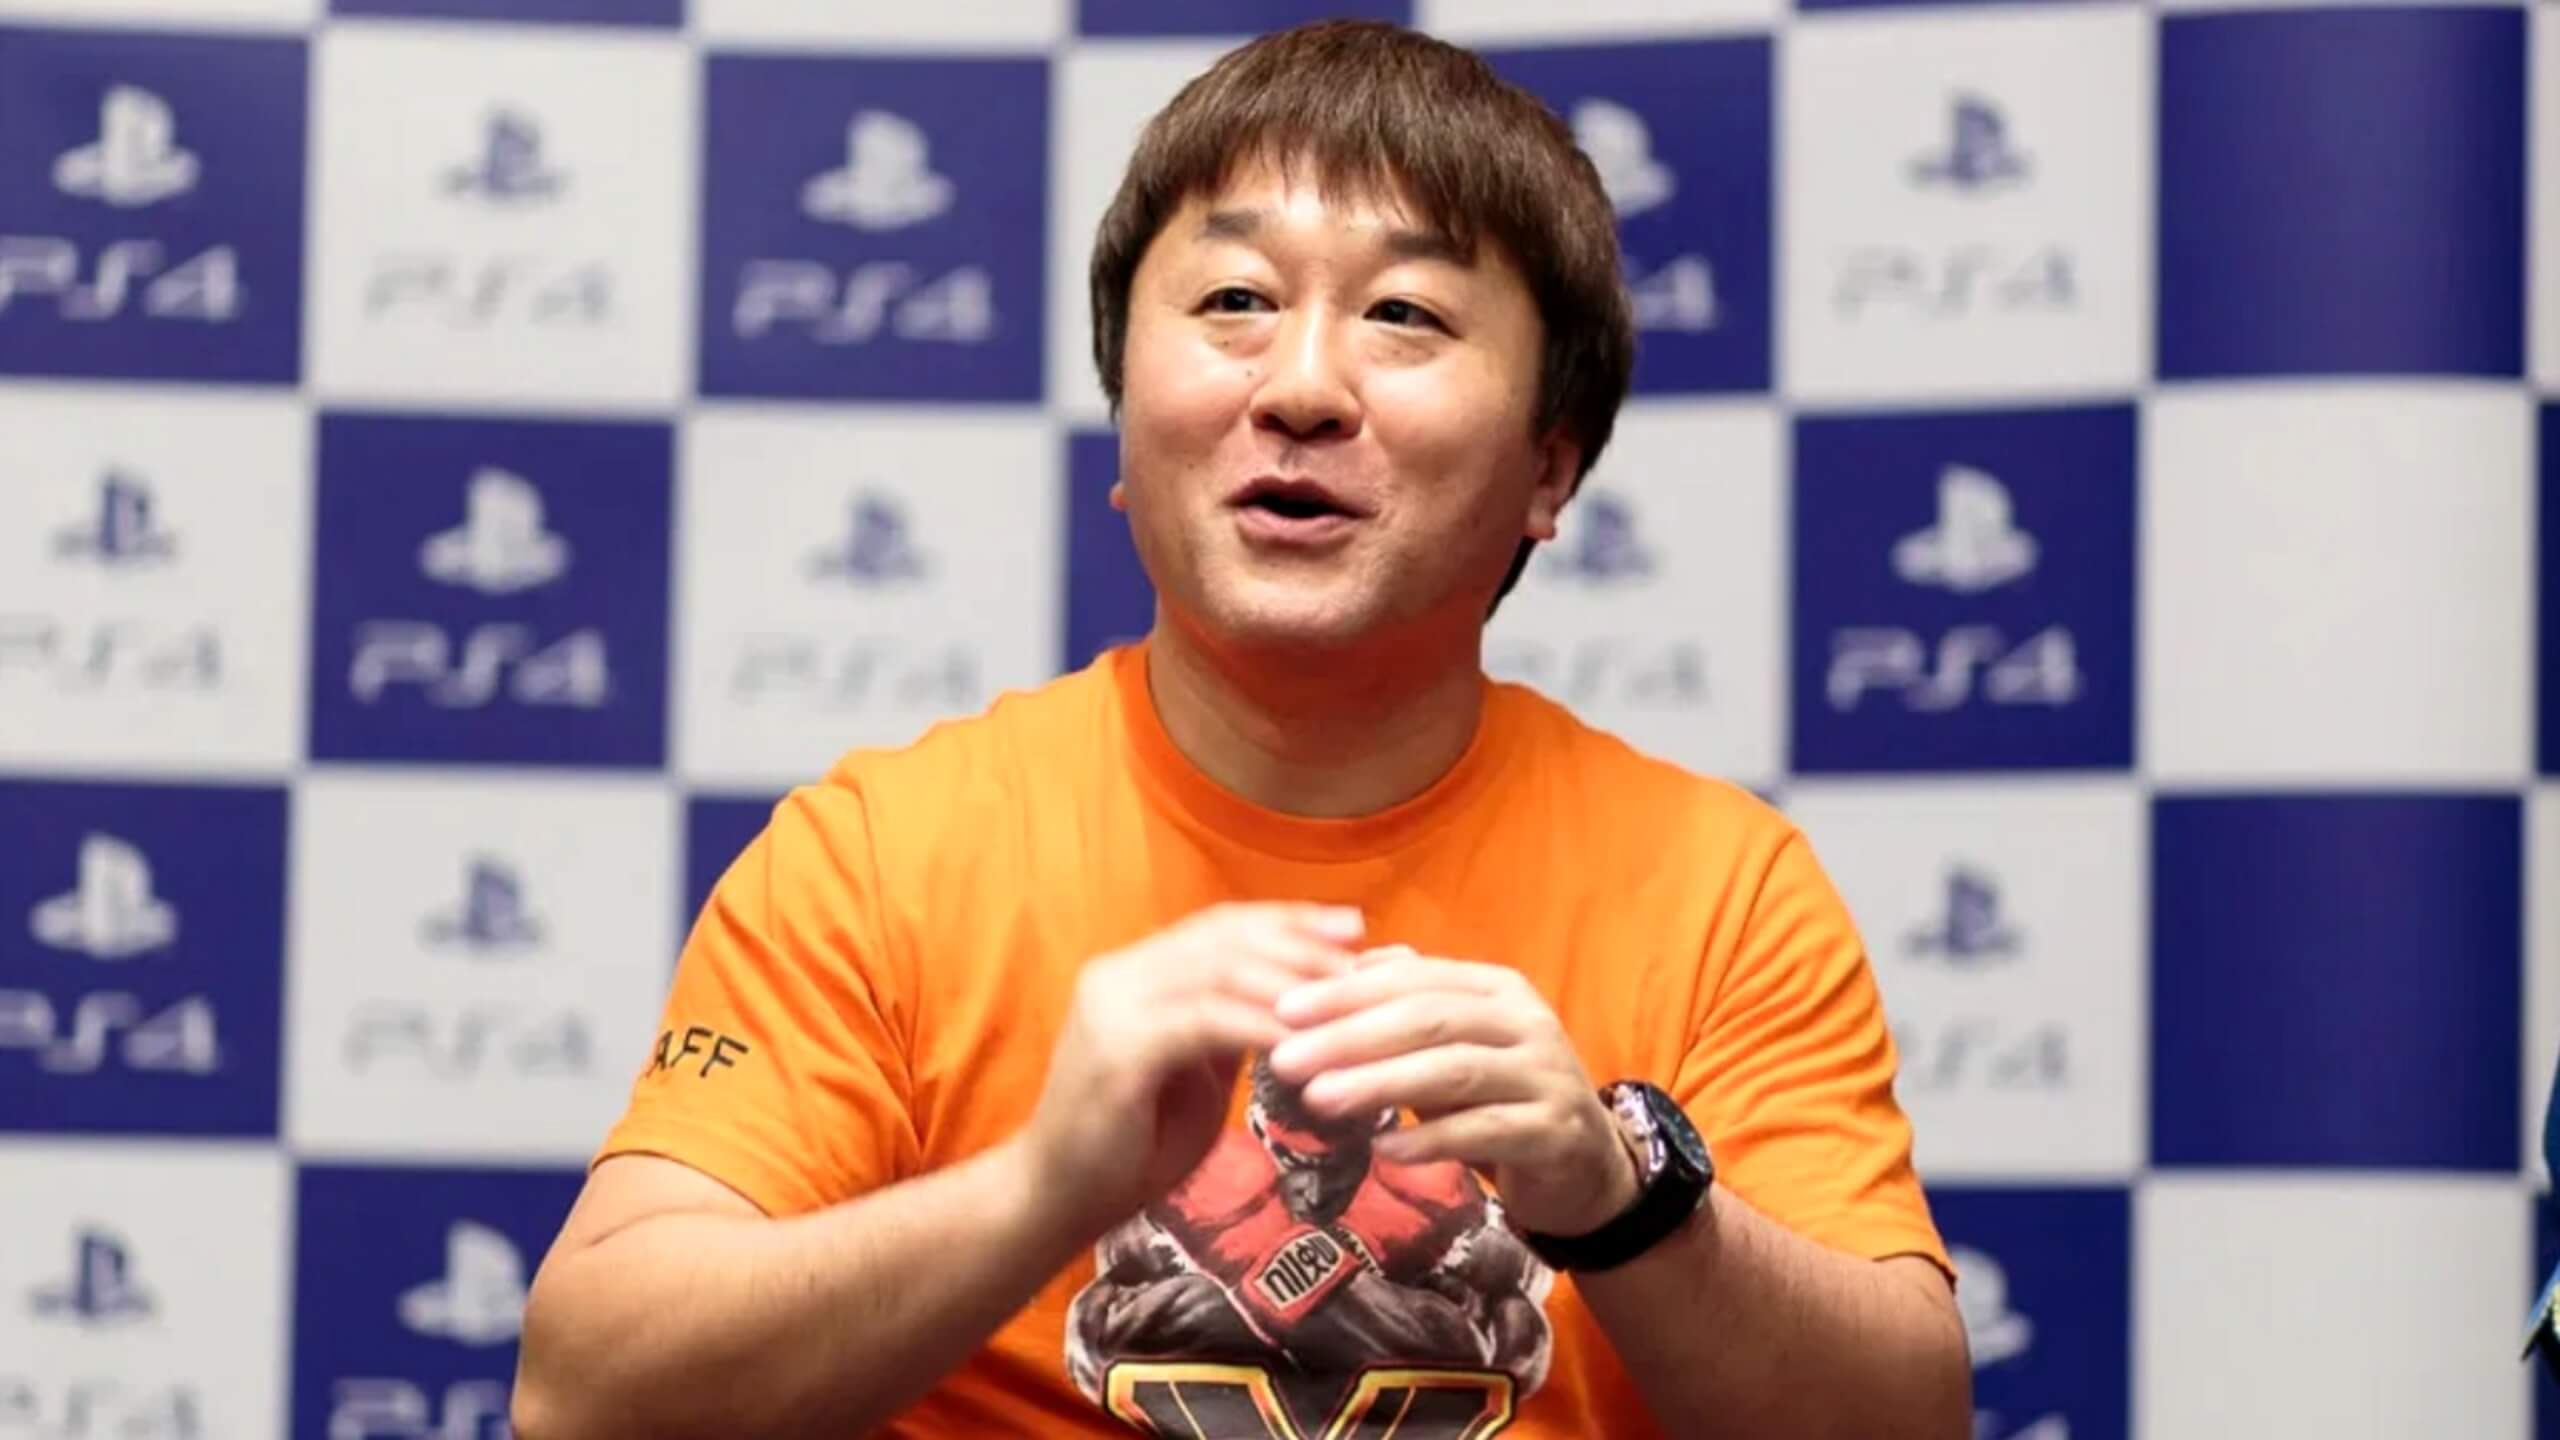 Former Street Fighter Producer Yoshinori Ono Joins DELiGHTWORKS